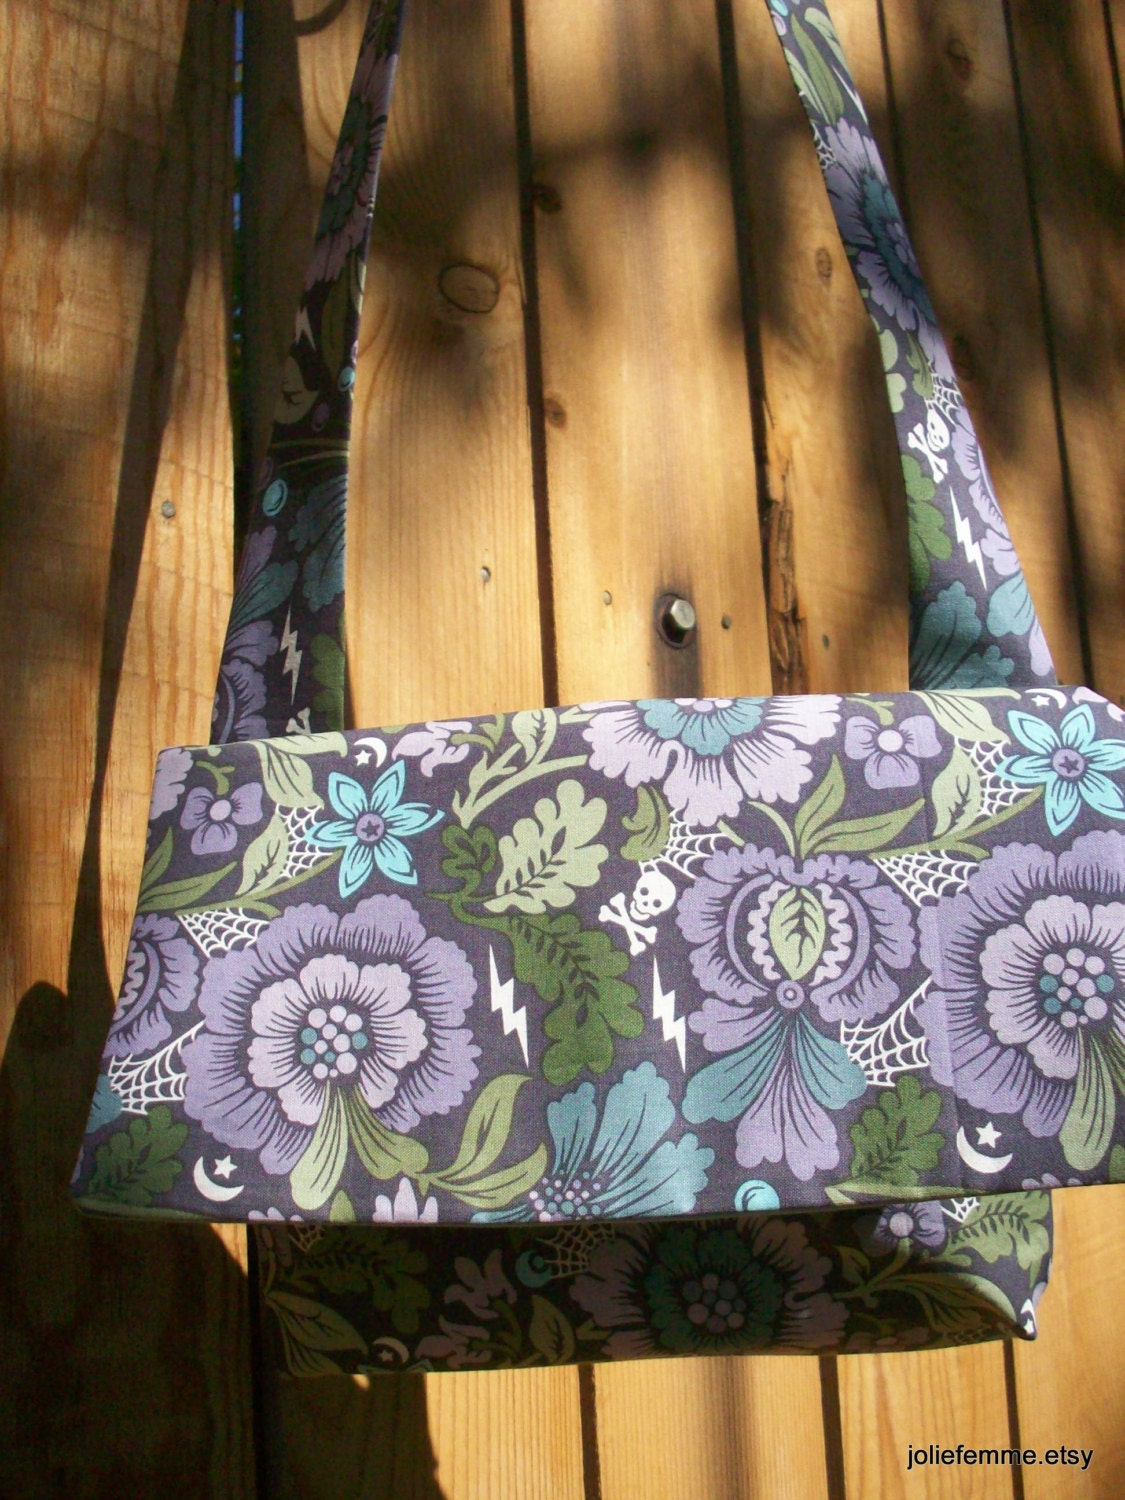 Nightshade Floral Purple and Gray  Envelope Cross Body Bag with Shoulder Strap Lightweight - joliefemme